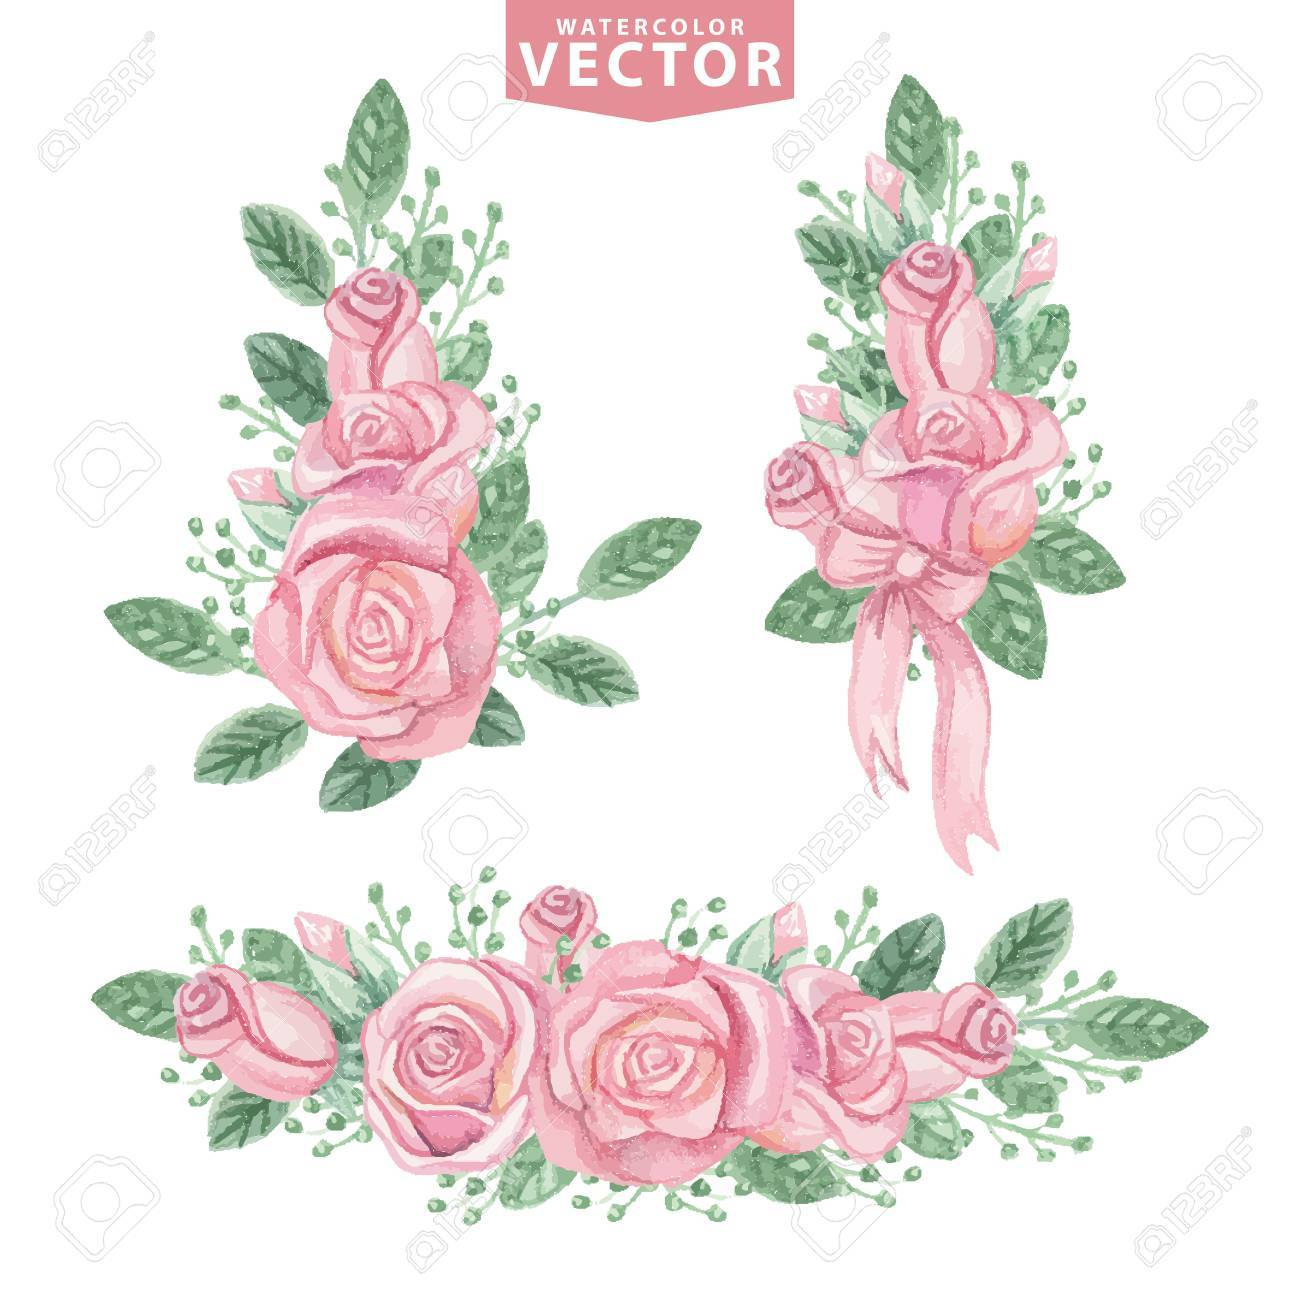 Watercolor Pink Roses Compositionste Vintage Flowers Royalty Free